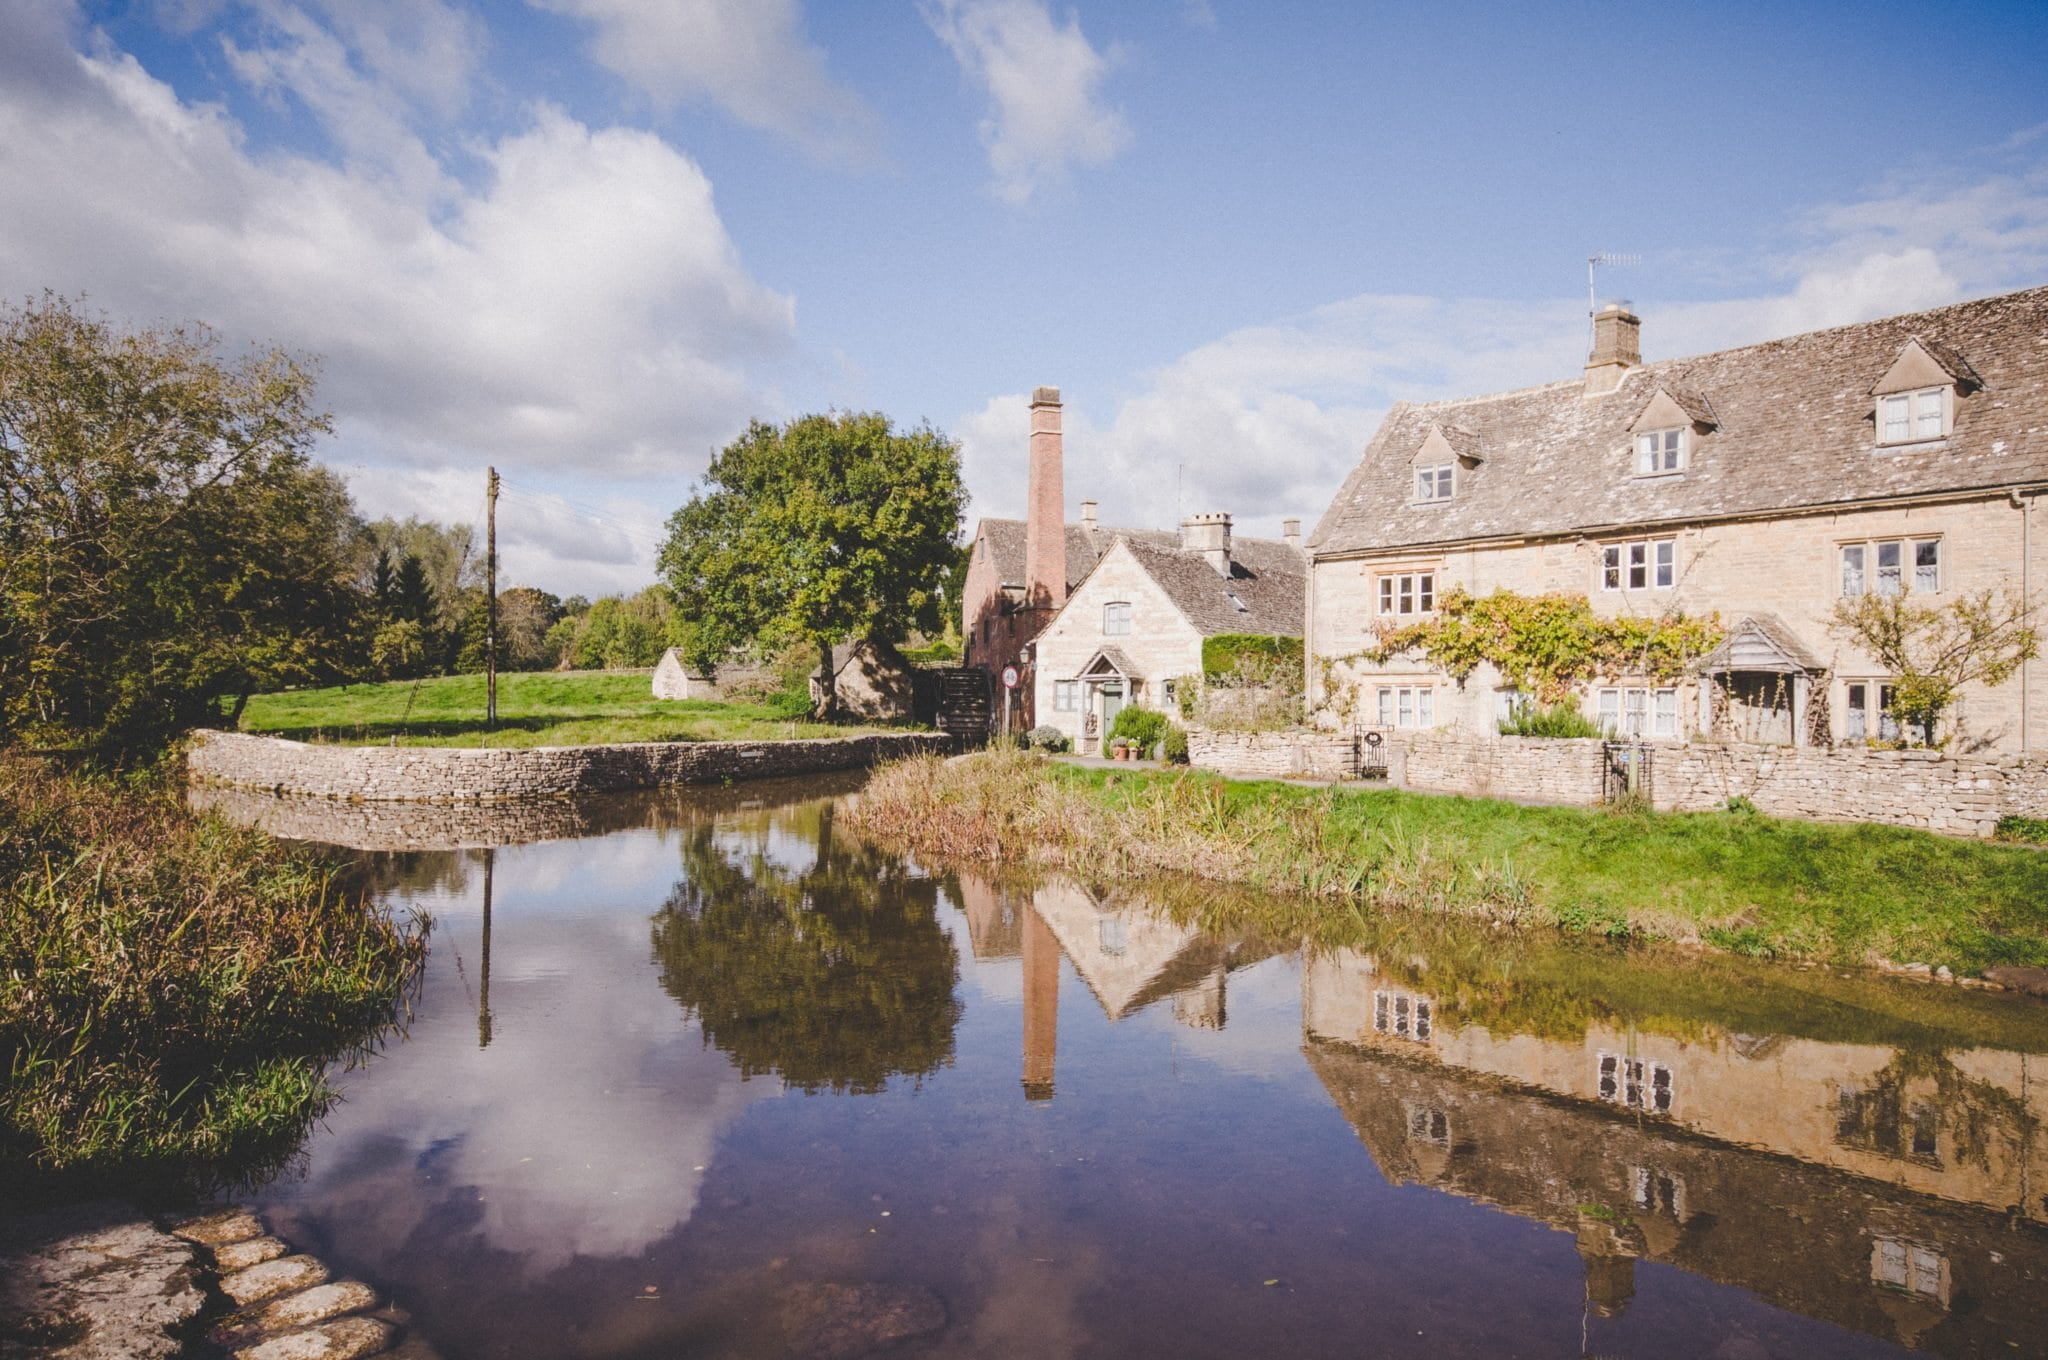 Cotswolds Villages 16 of the best and prettiest in 3 days